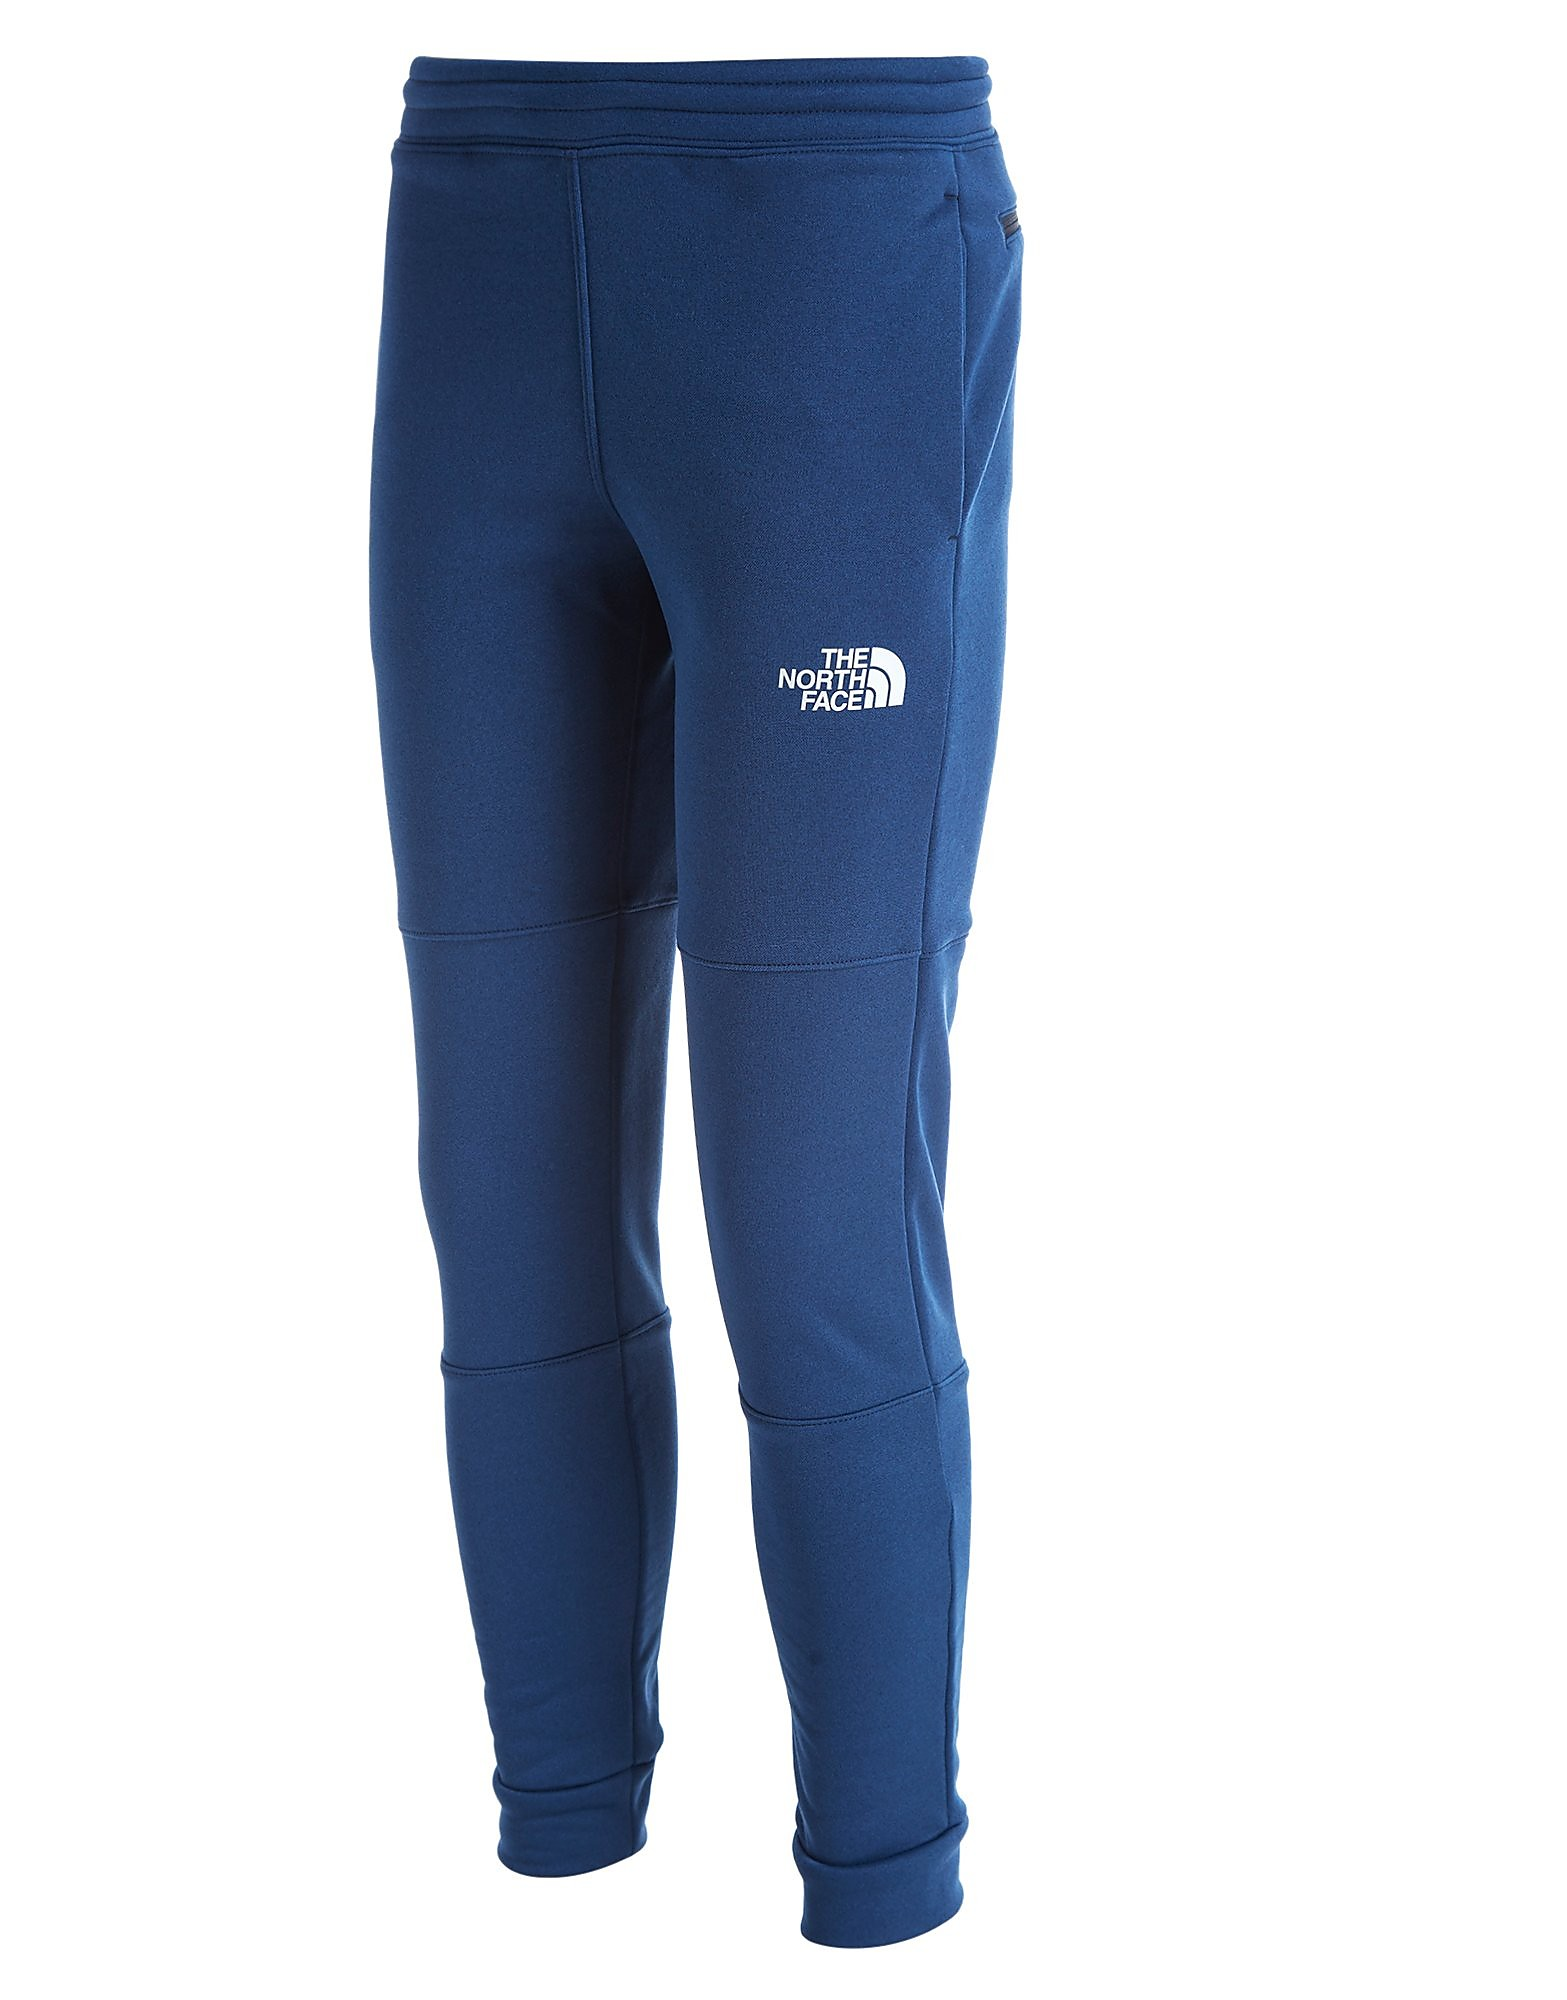 The North Face Mittellegi Pants Junior - alleen bij JD - Blauw - Kind